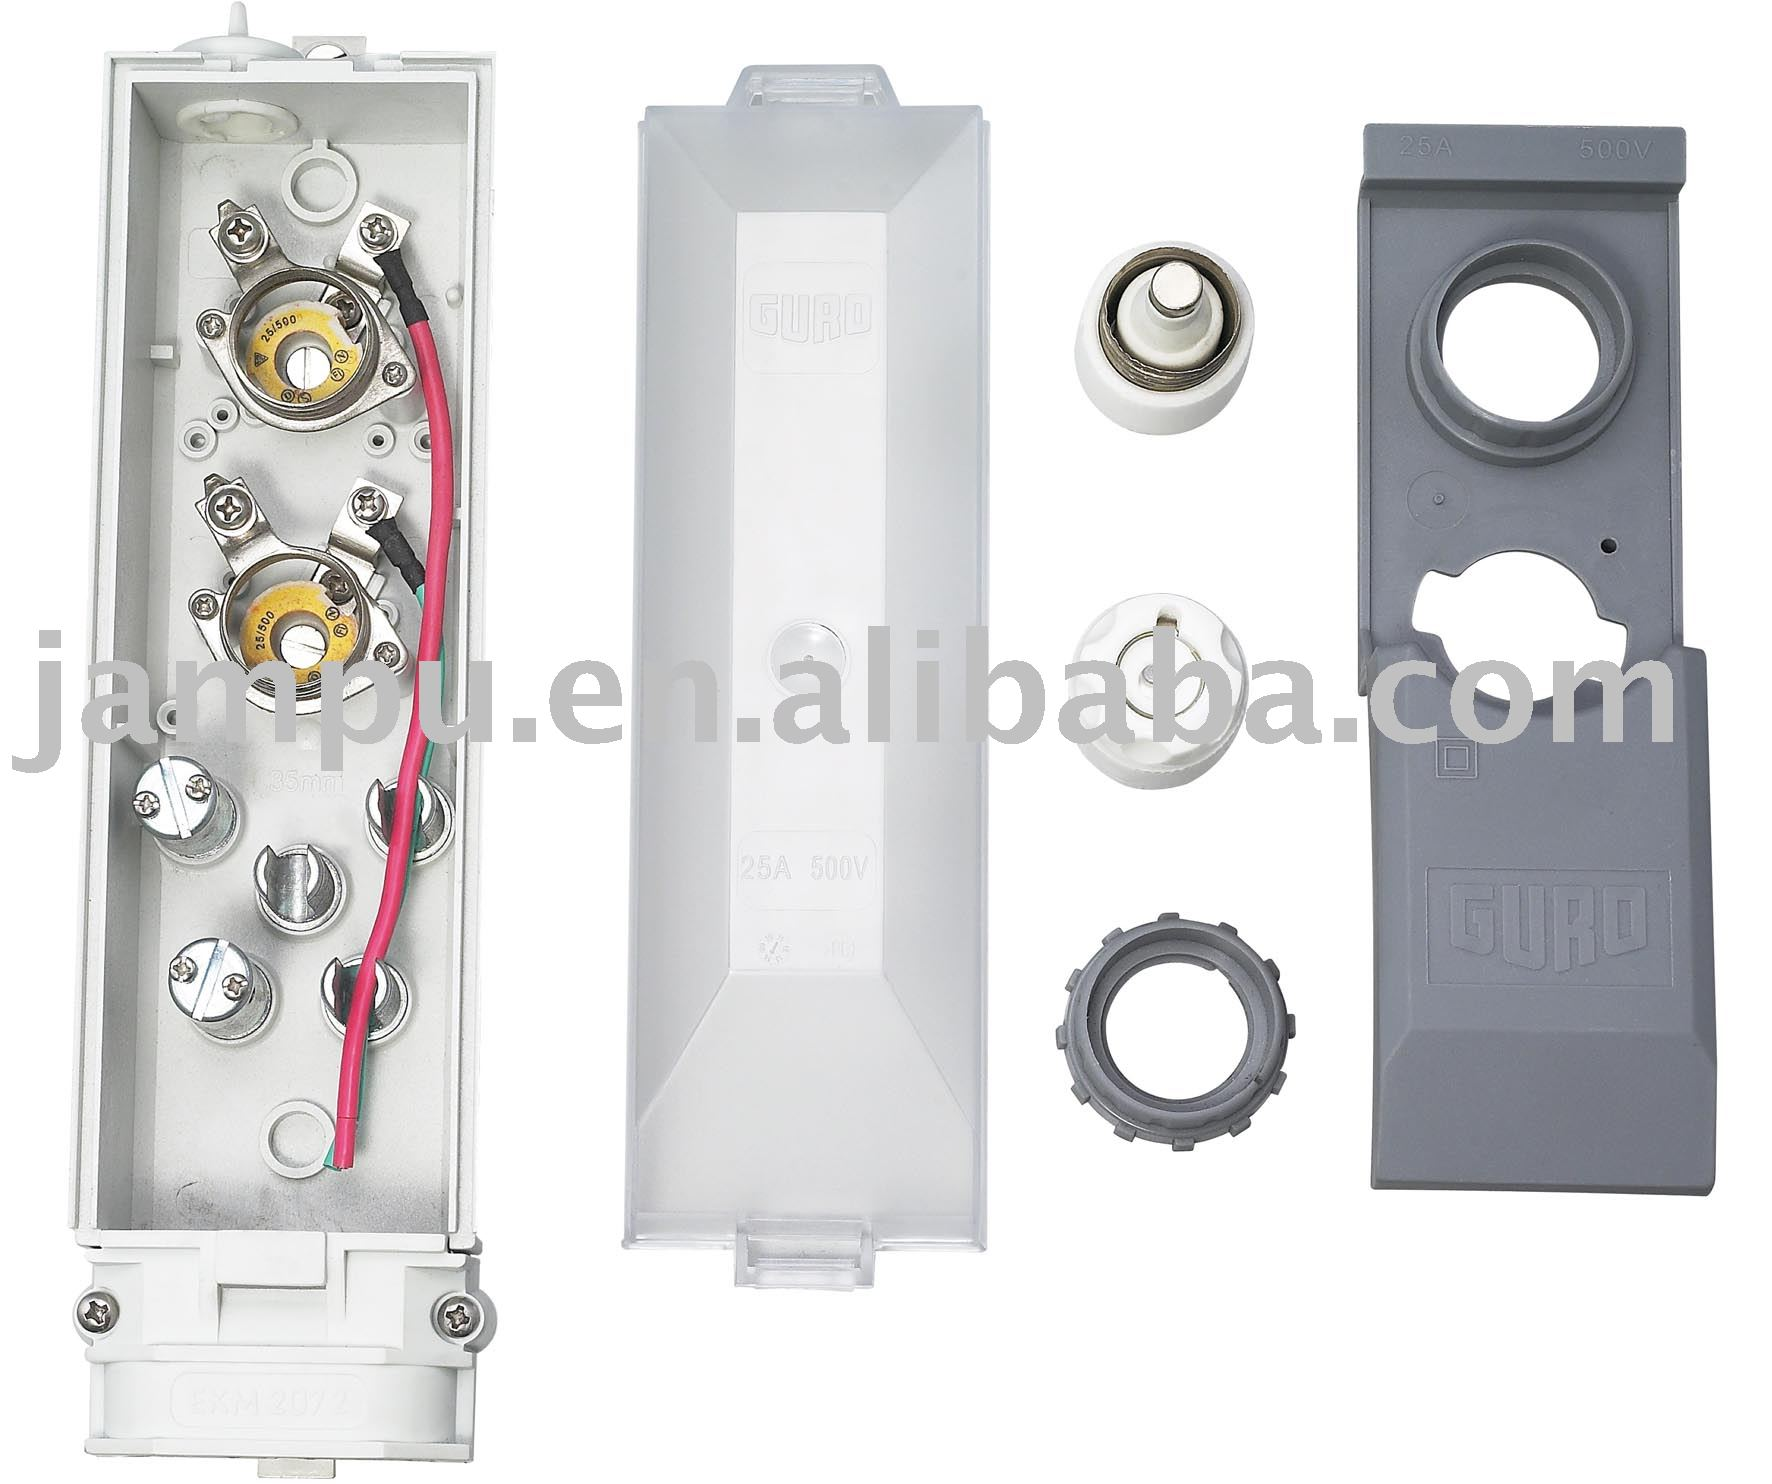 Manufacturer of High Quality Connection Box /Junction Box For Lighting Application /Light Box